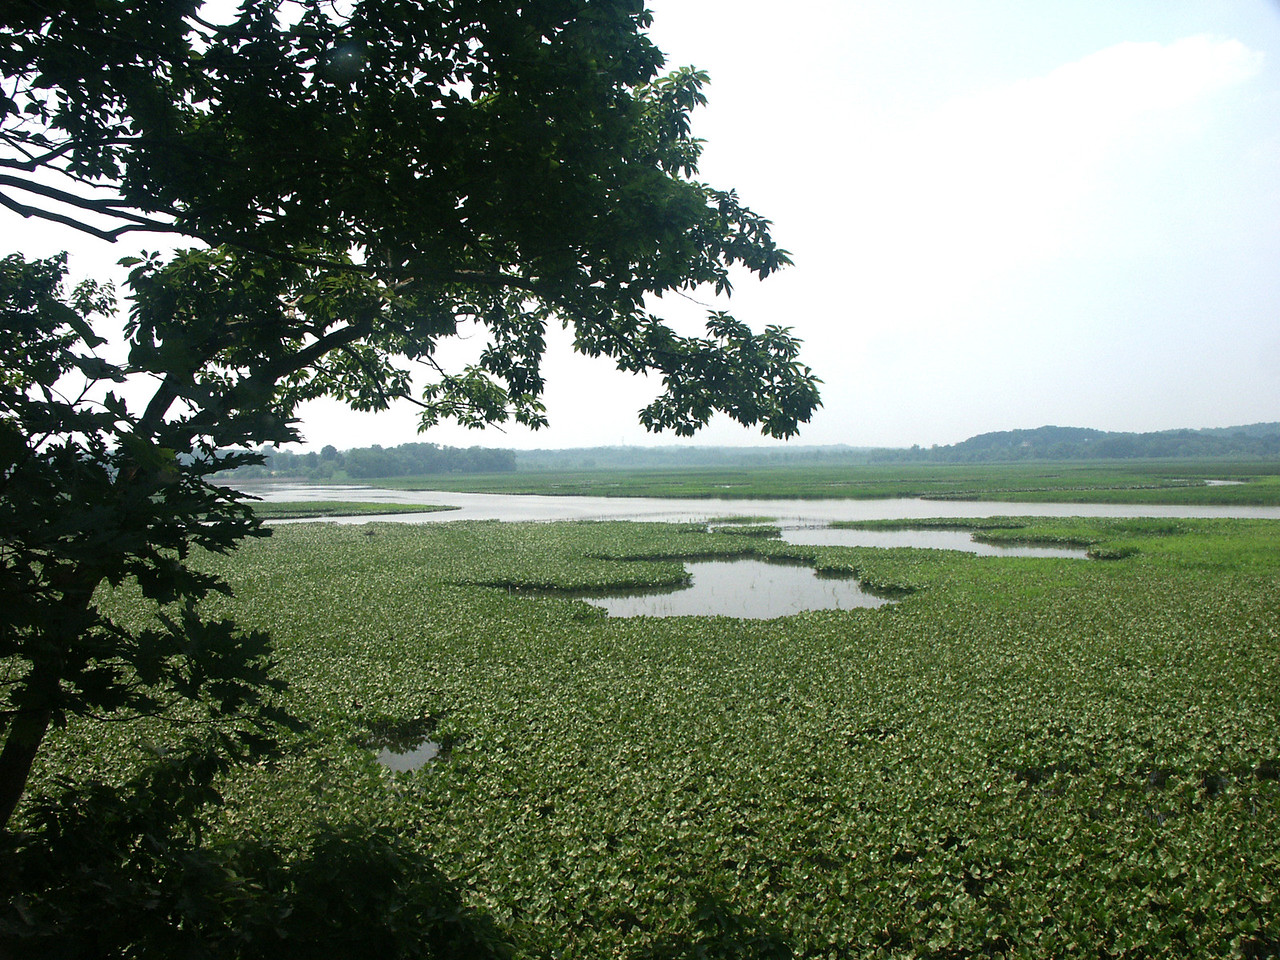 View of Jug Bay marshlands about 20 miles south of Ananpolis.